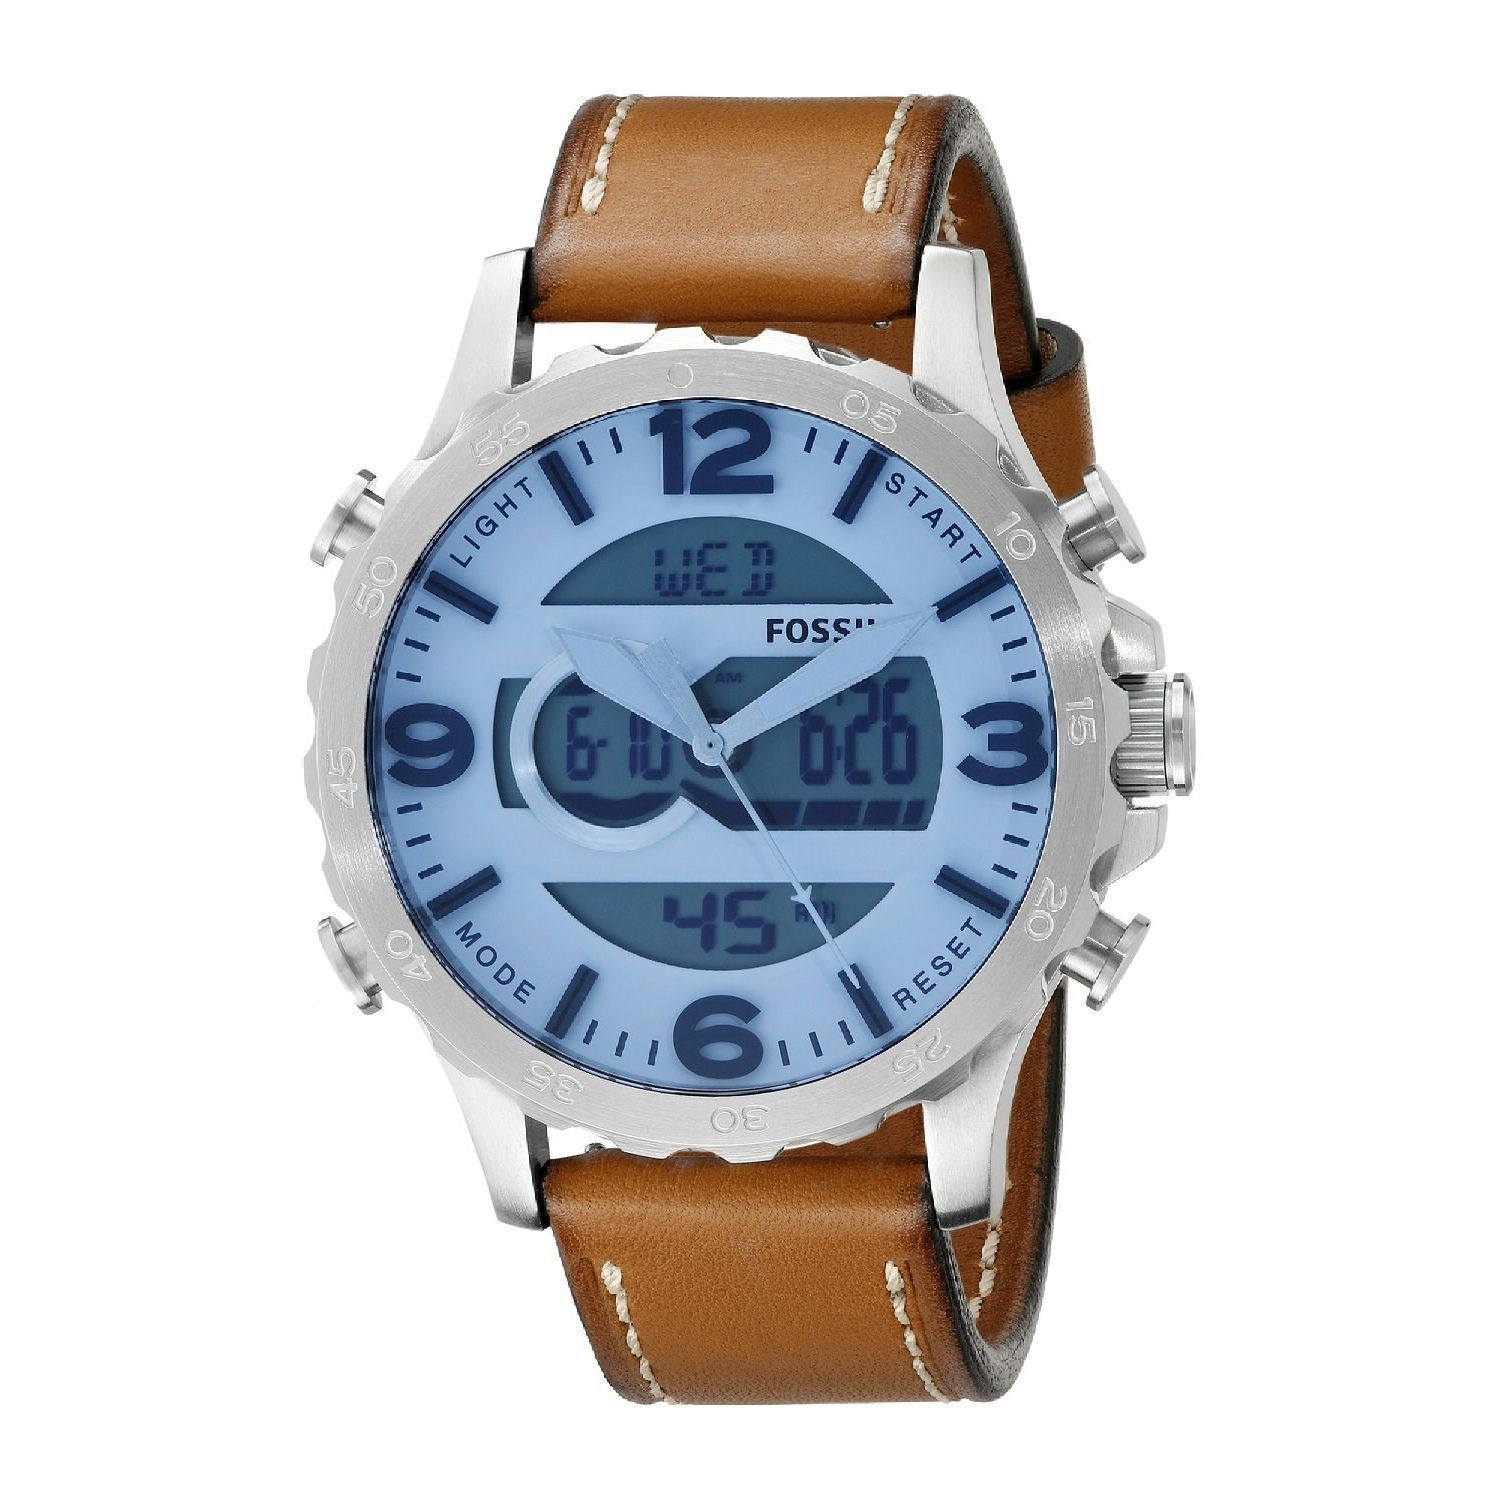 Fossil Mens Nate Analog Digital Multi Function Brown Leather Watch Fs5176 Jr1492